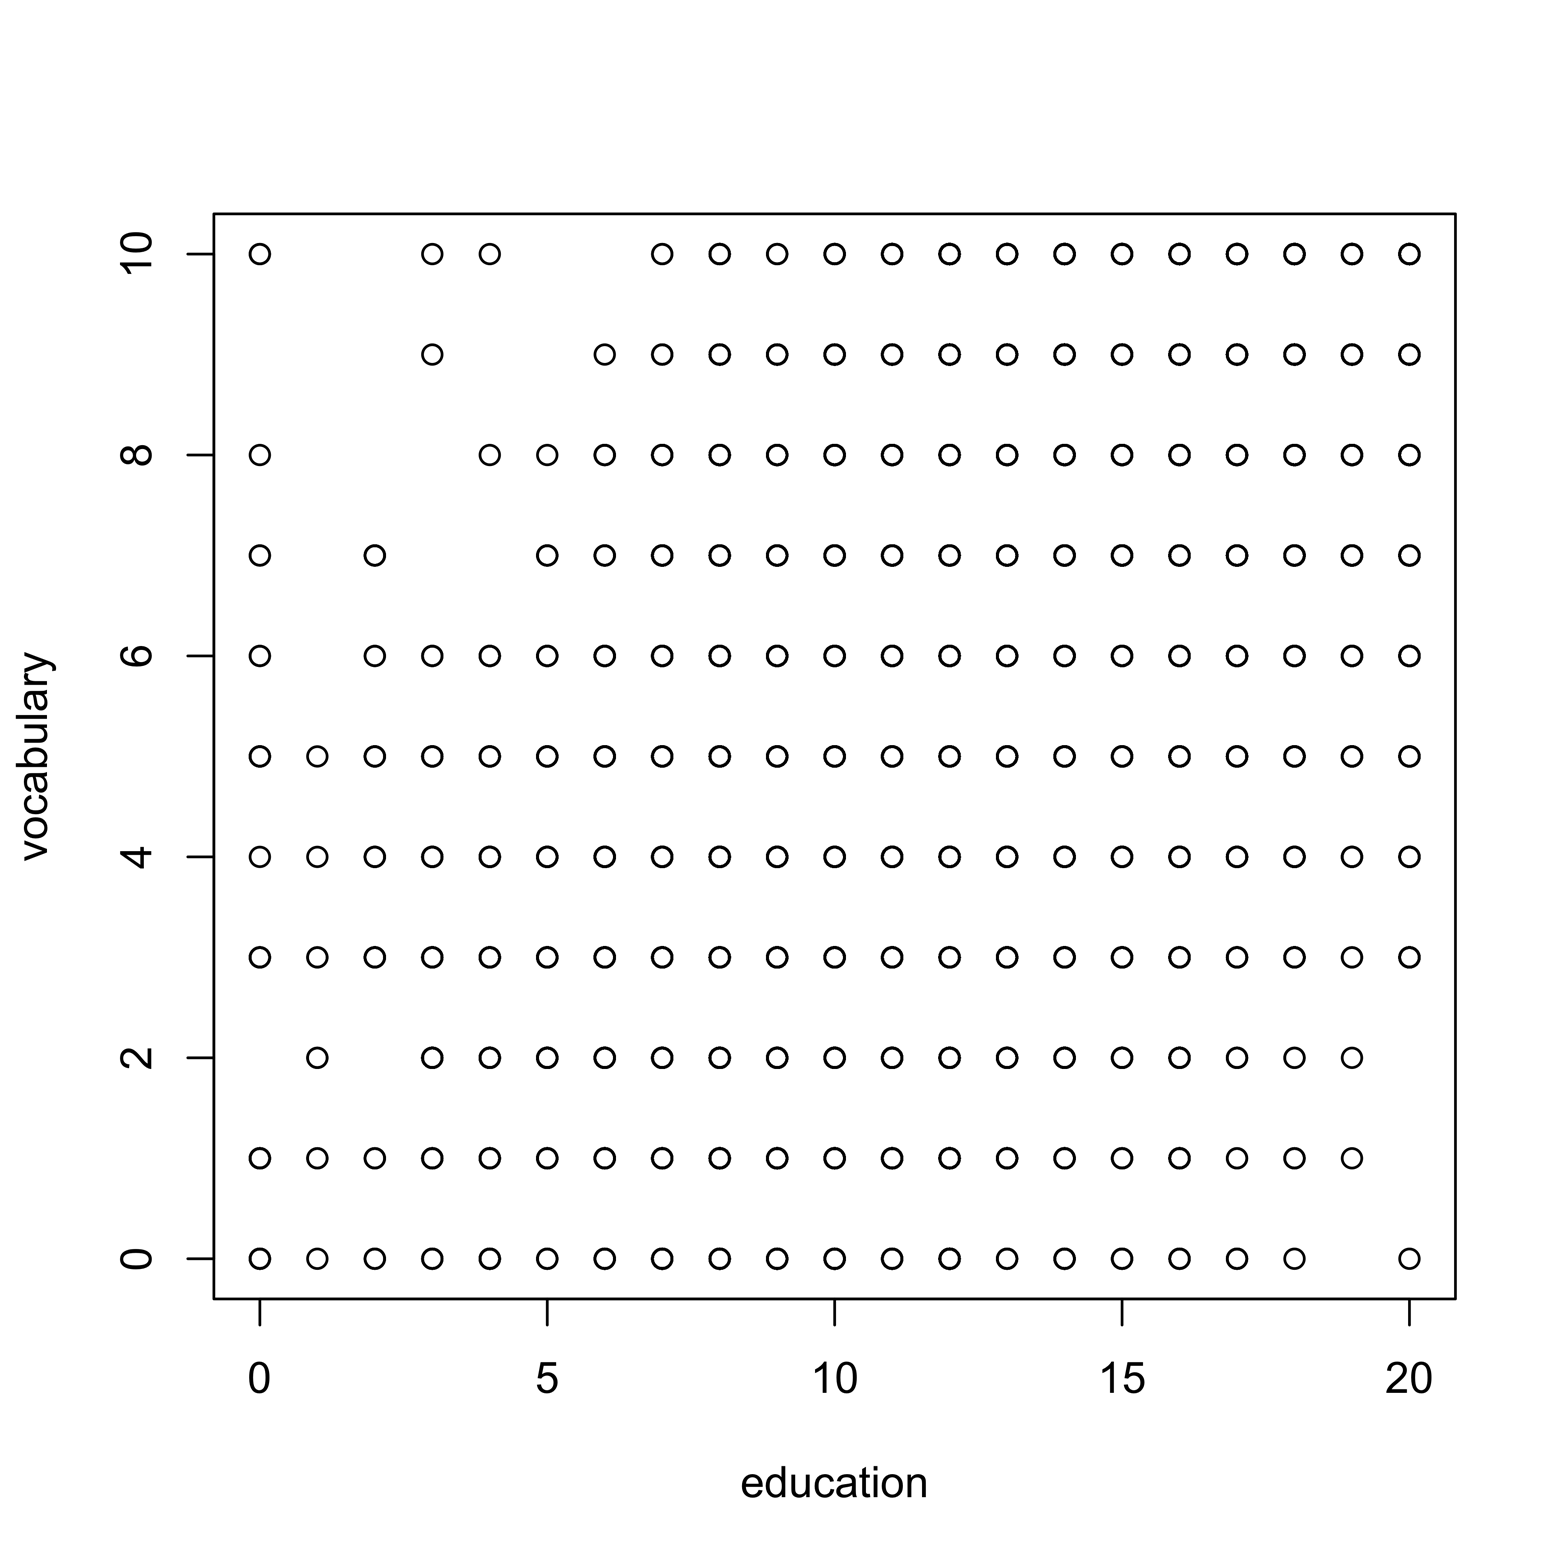 A scatter plot of education and vocabulary.